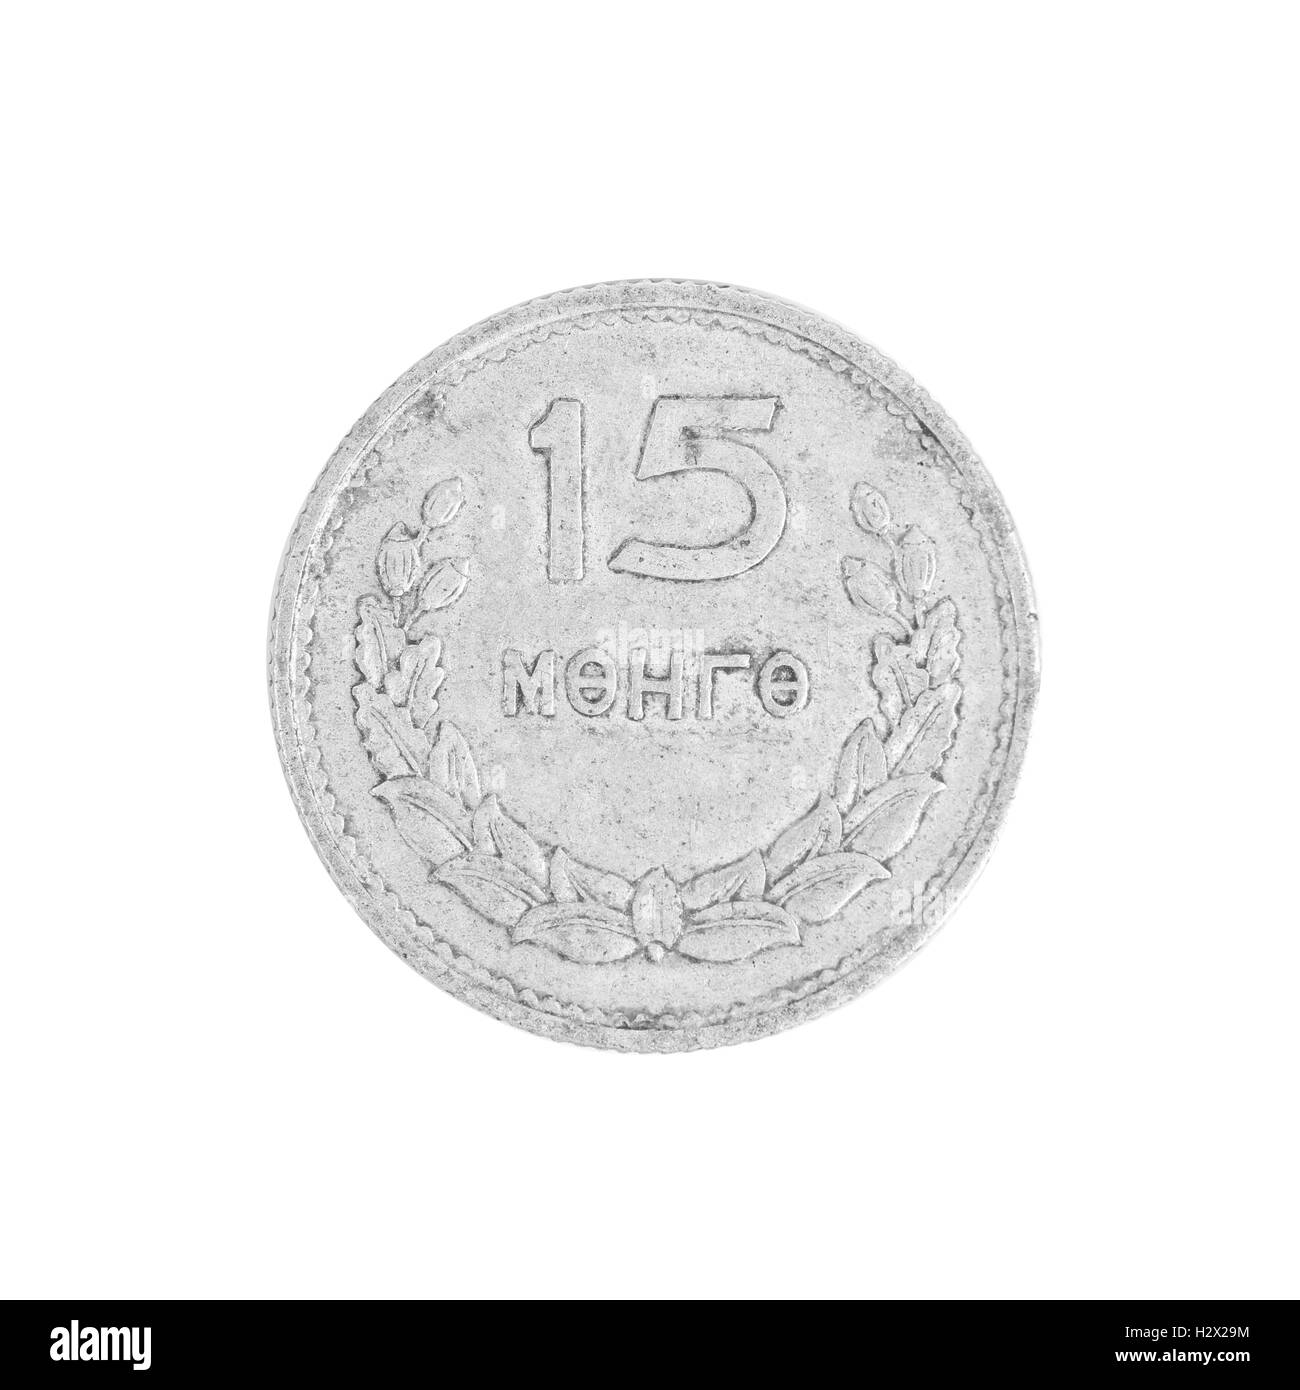 Mongolia coin close up. - Stock Image